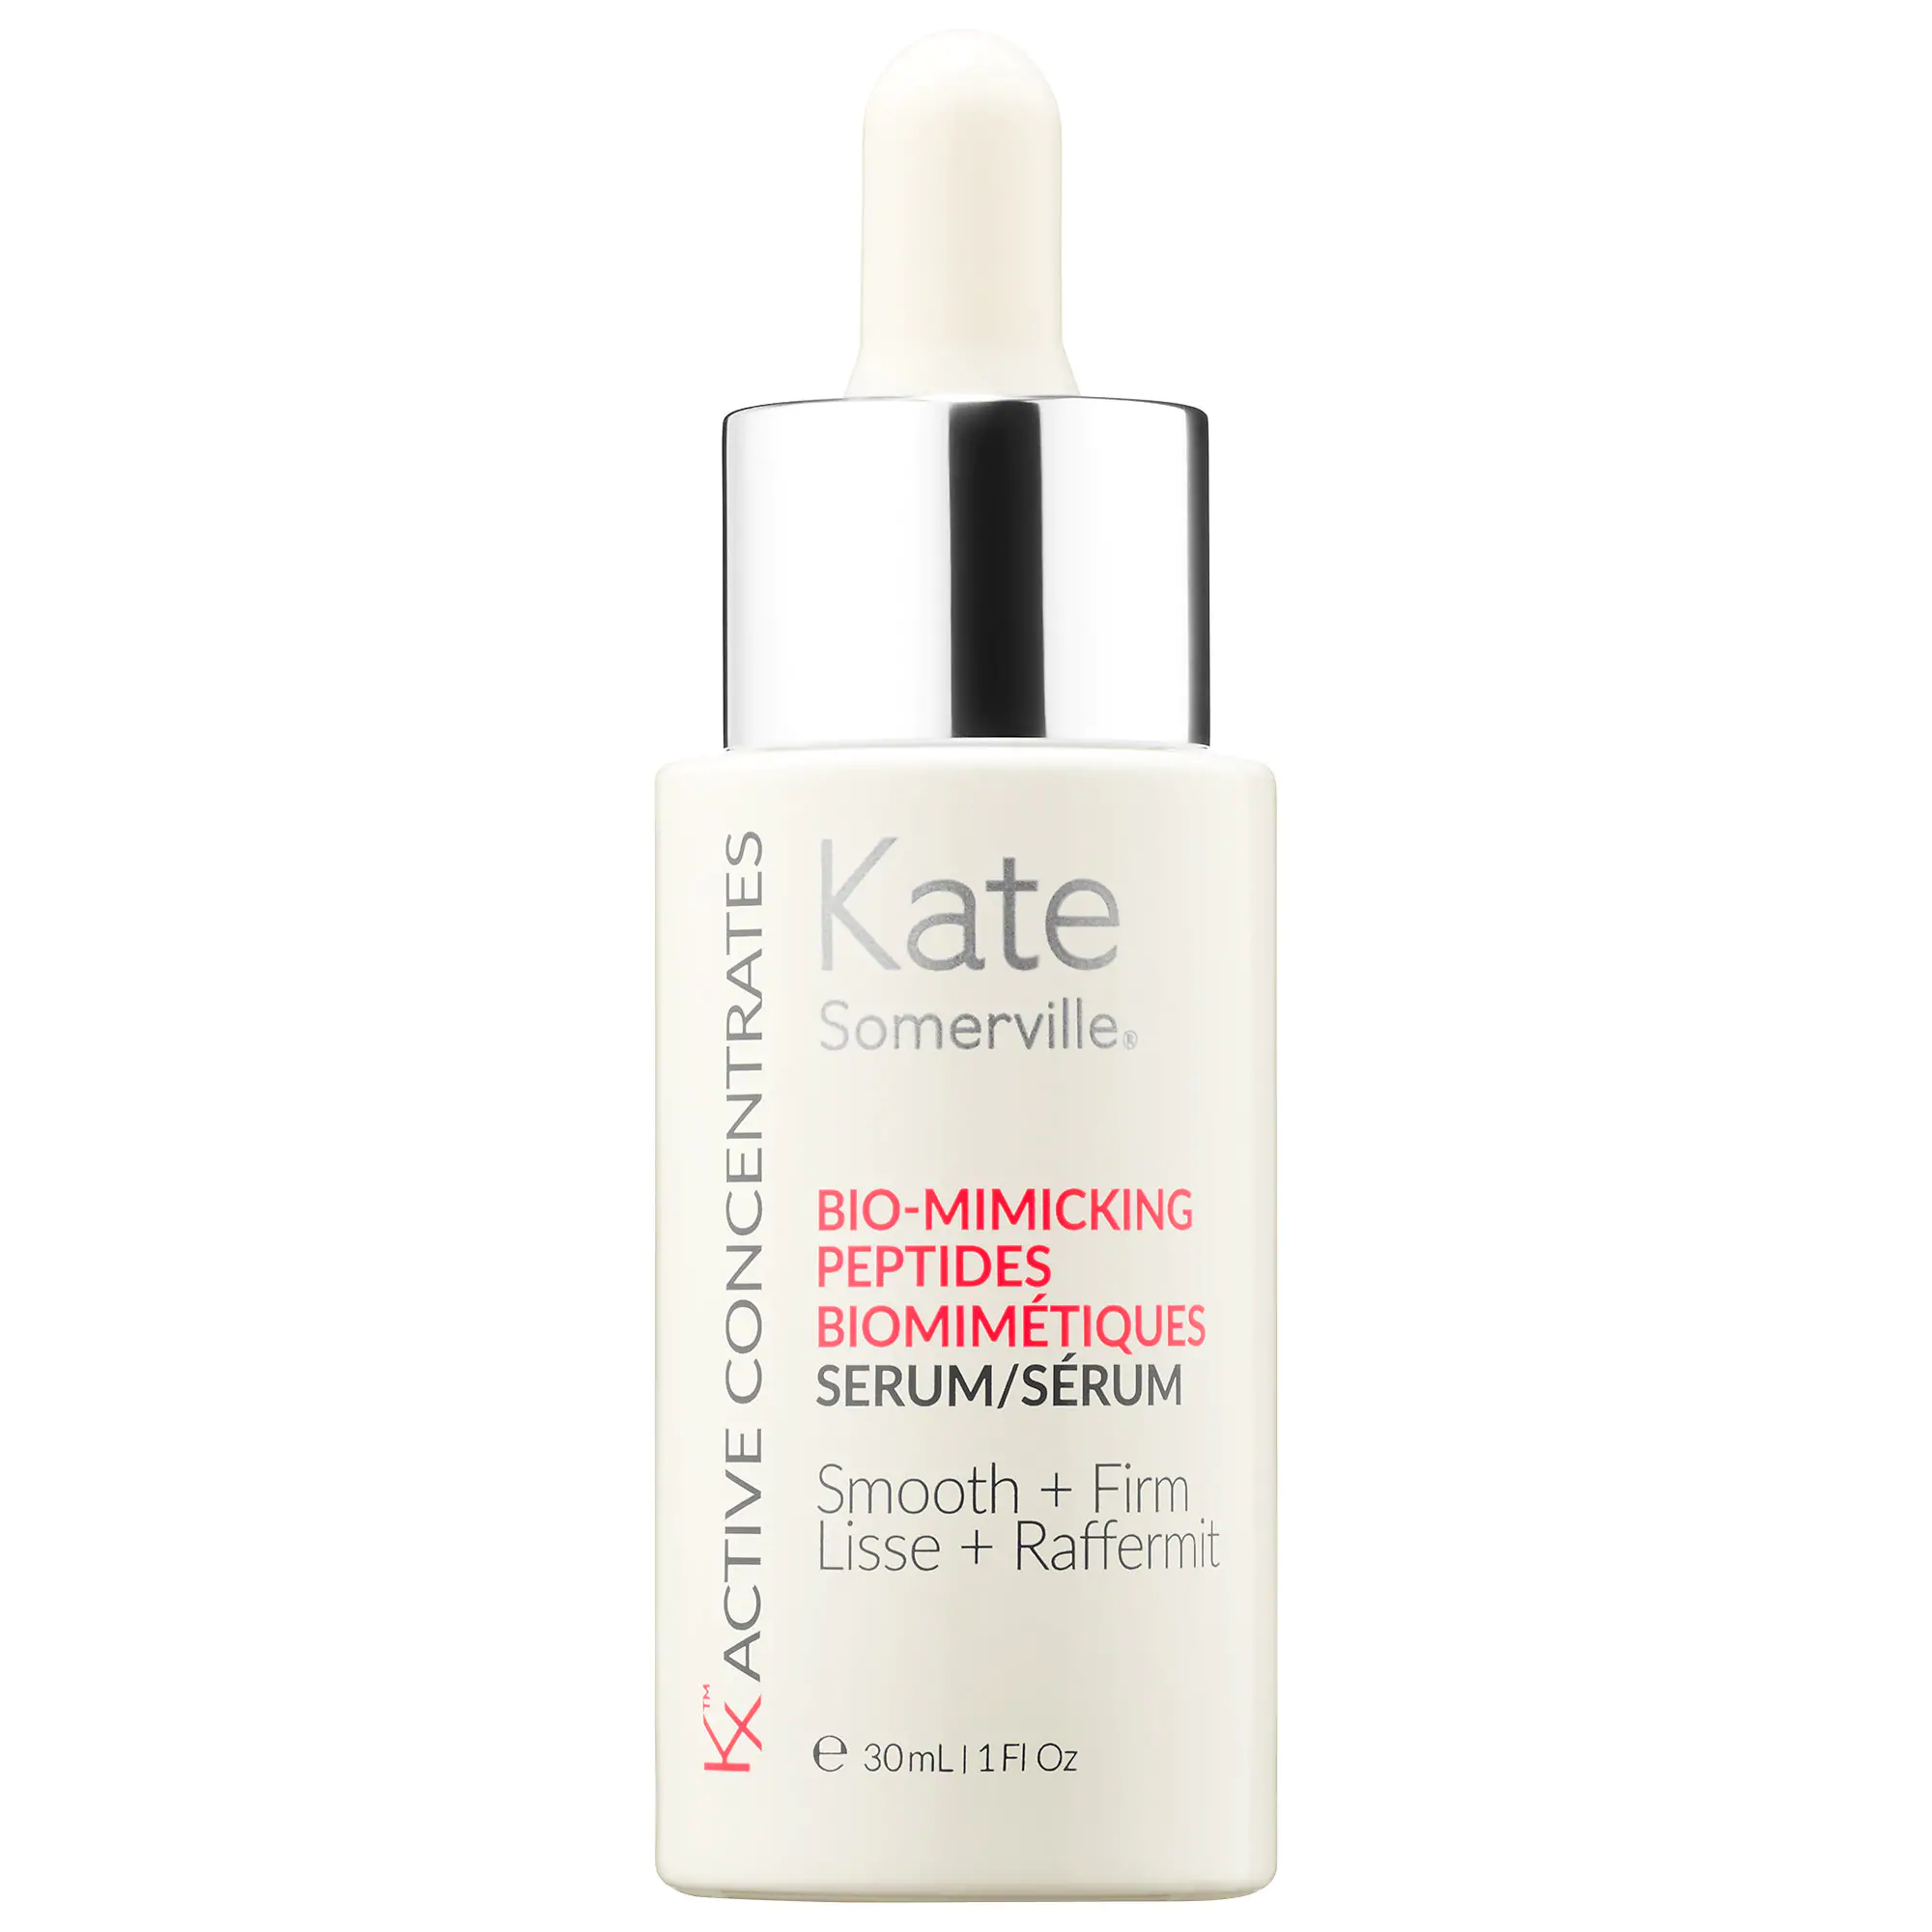 Kate Somerville-Kx Active Concentrates Bio-Mimicking Peptides Serum